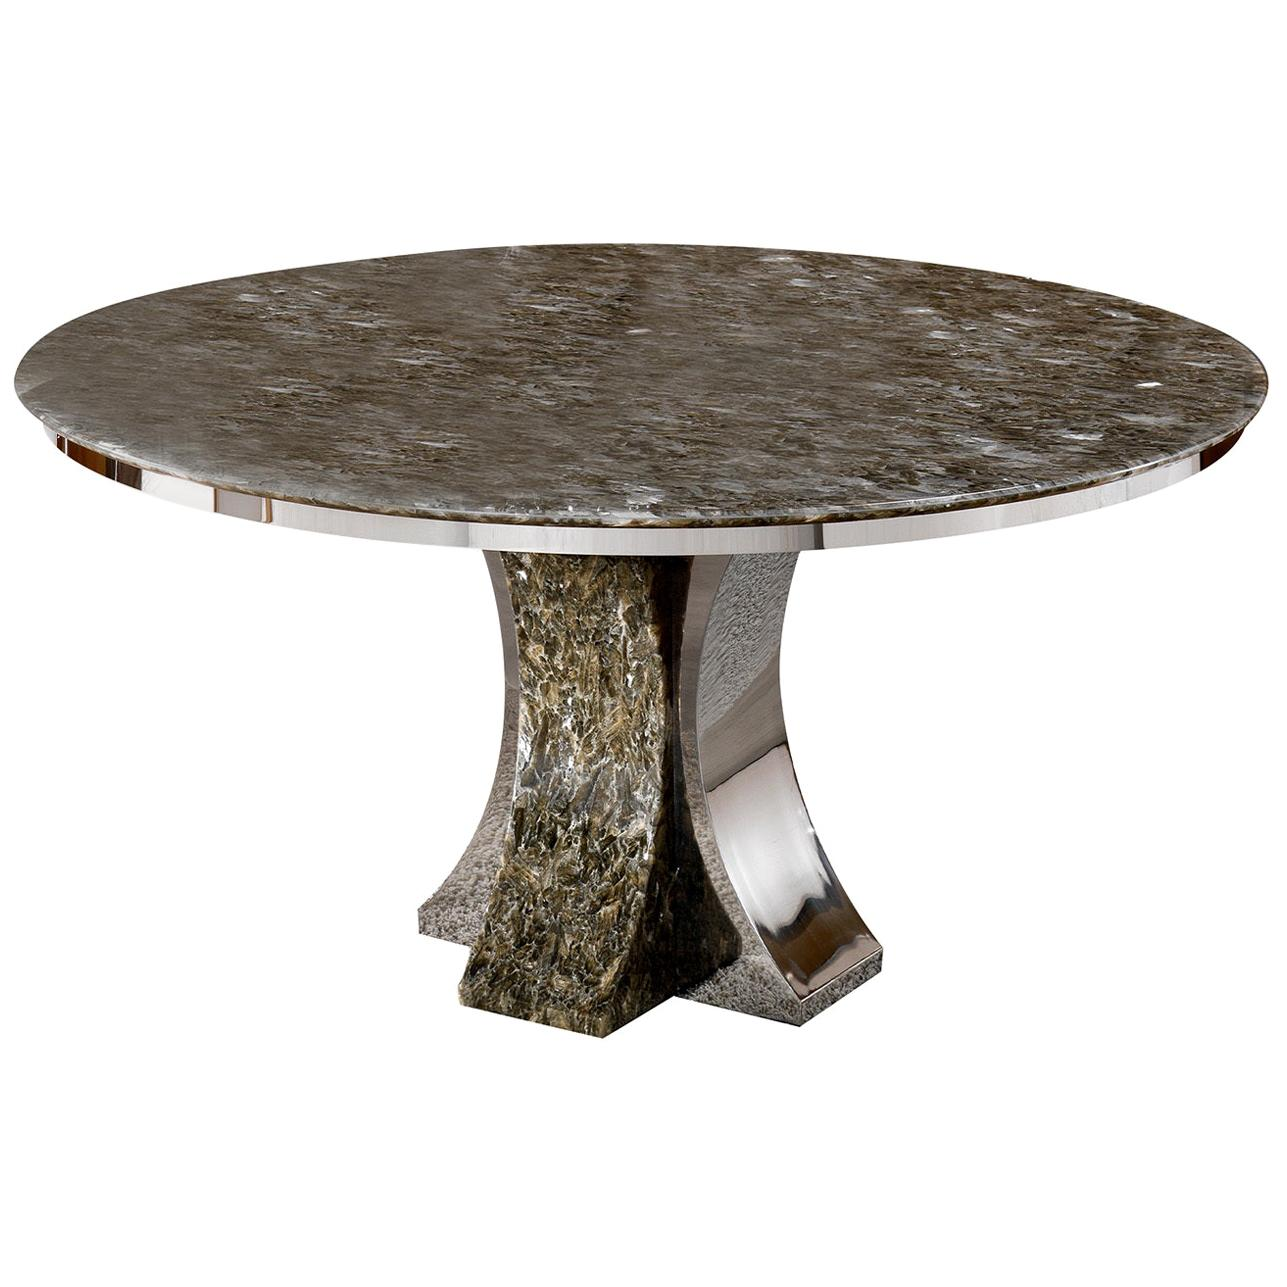 Parenthesis Round Dining Table